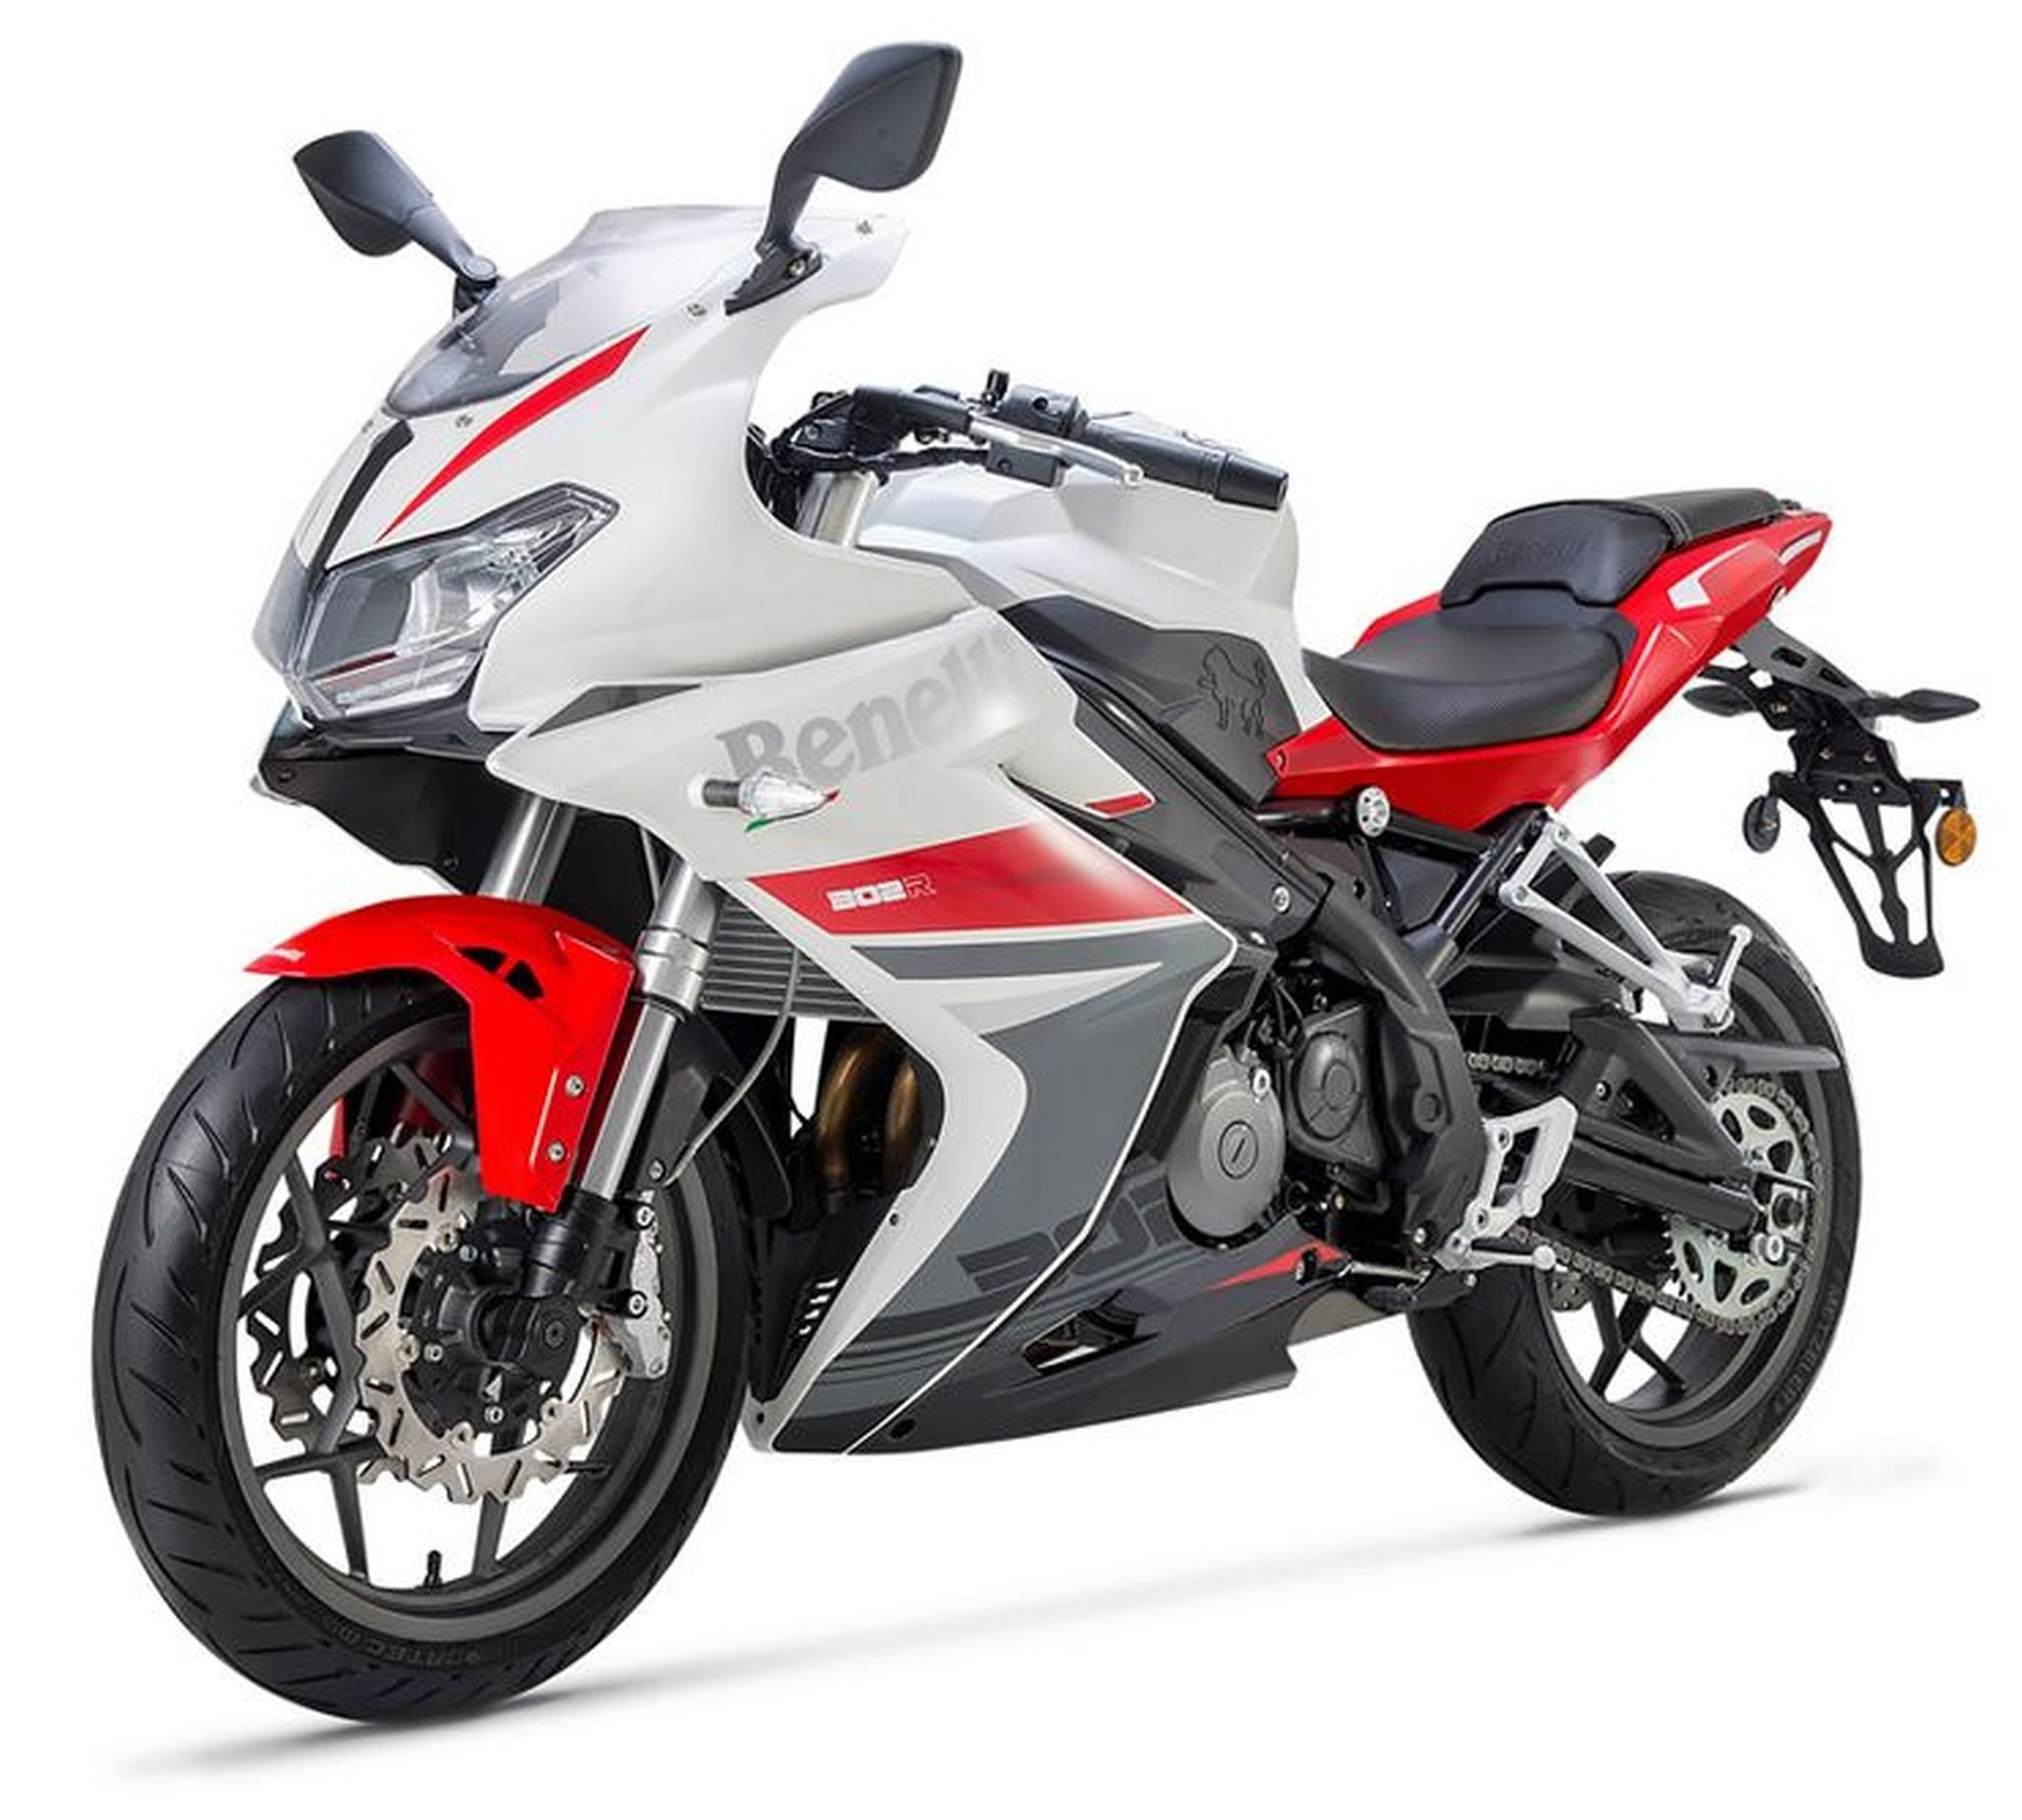 BENELLI BN 125i 2020 125cc STREET price, specifications